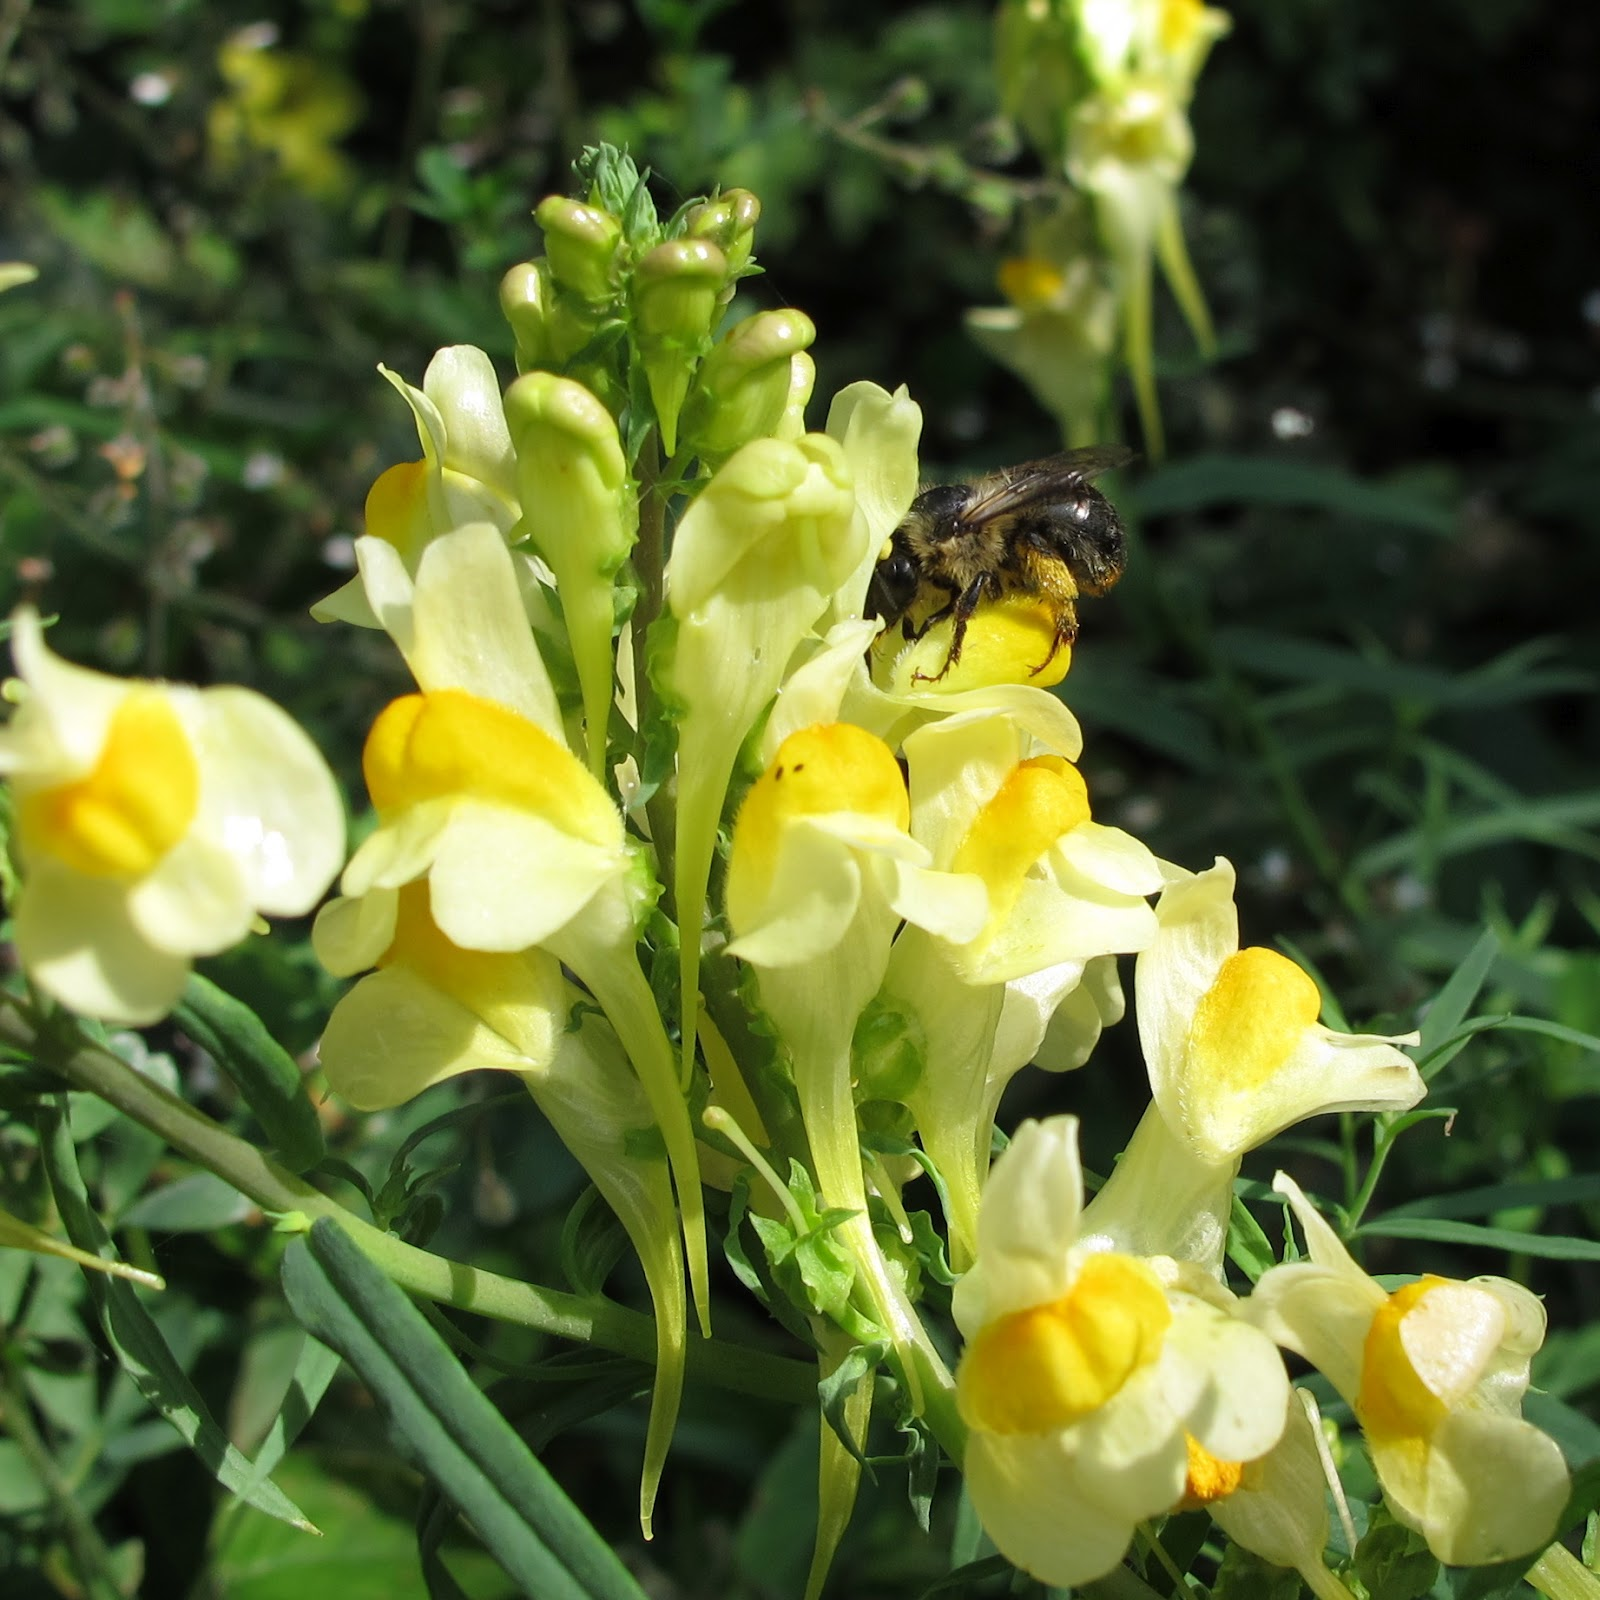 BugBlog Forked tailed flower bee on mon toadflax